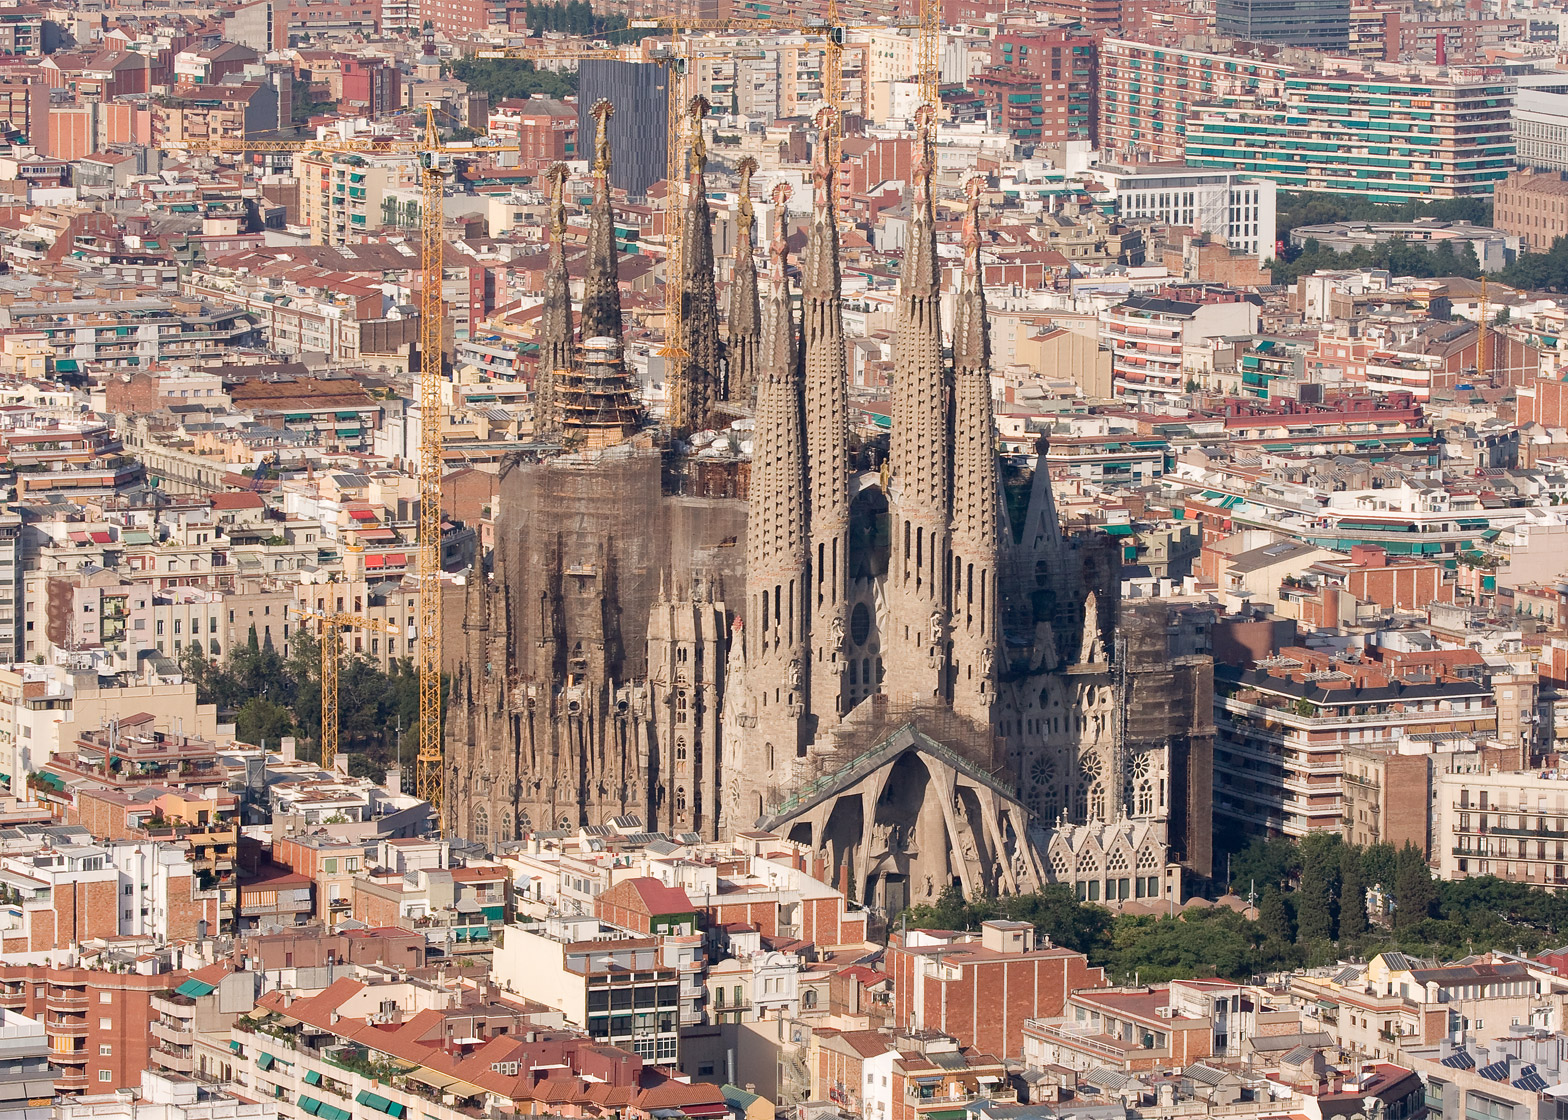 The Sagrada Família has been under construction for over 100 years